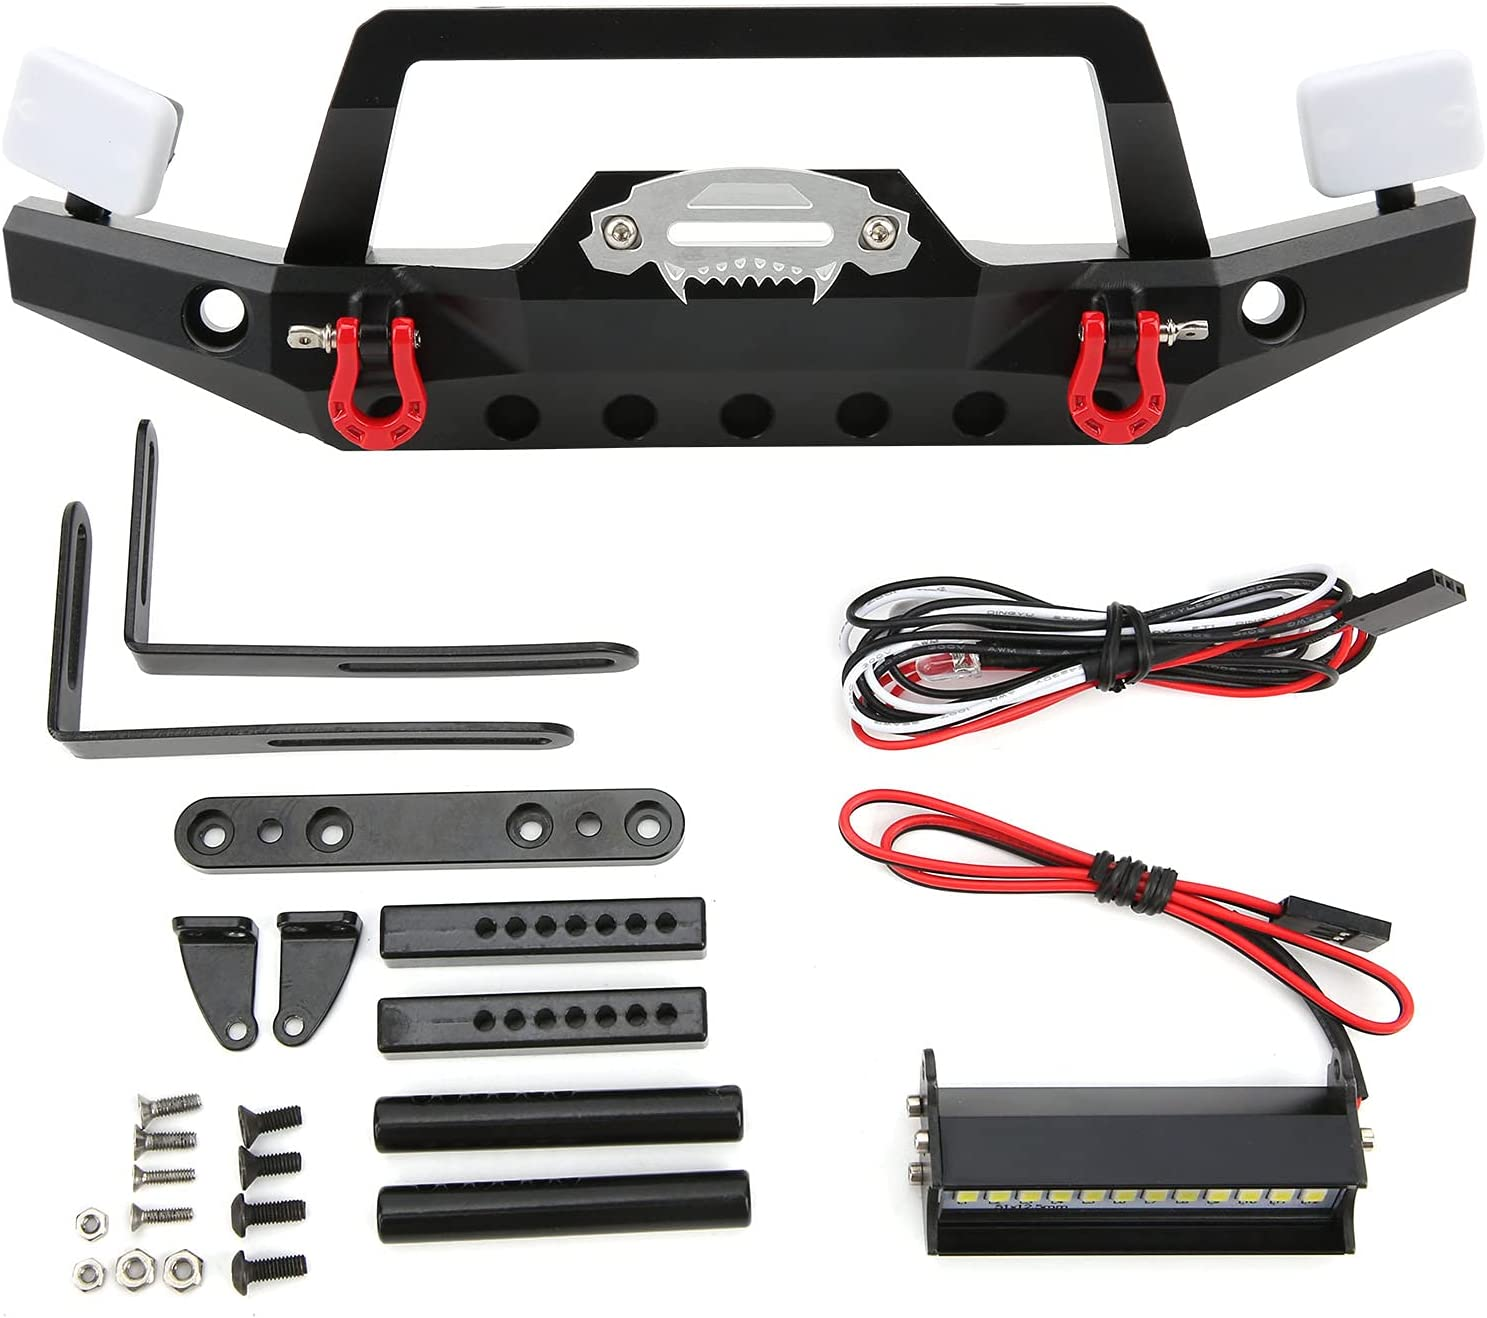 Vbestlife RC Front Max 62% OFF Bumper with LED Light Bu Metal Max 72% OFF Alloy Aluminum